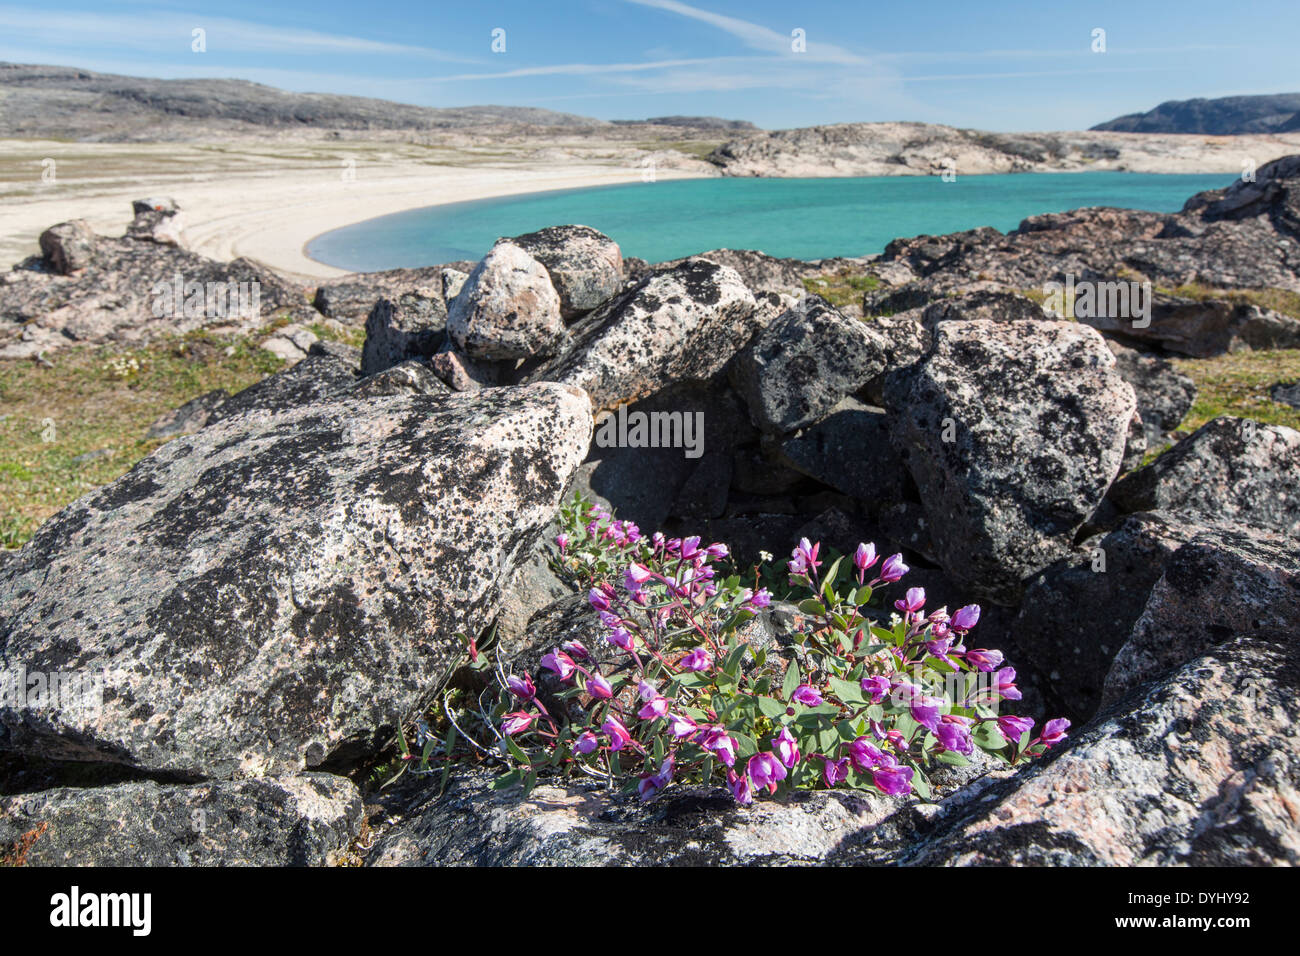 Canada Nunavut Territory Dwarf fireweed blossoms beside stones from Inuit tent ring on arctic tundra at south end of White - Stock Image